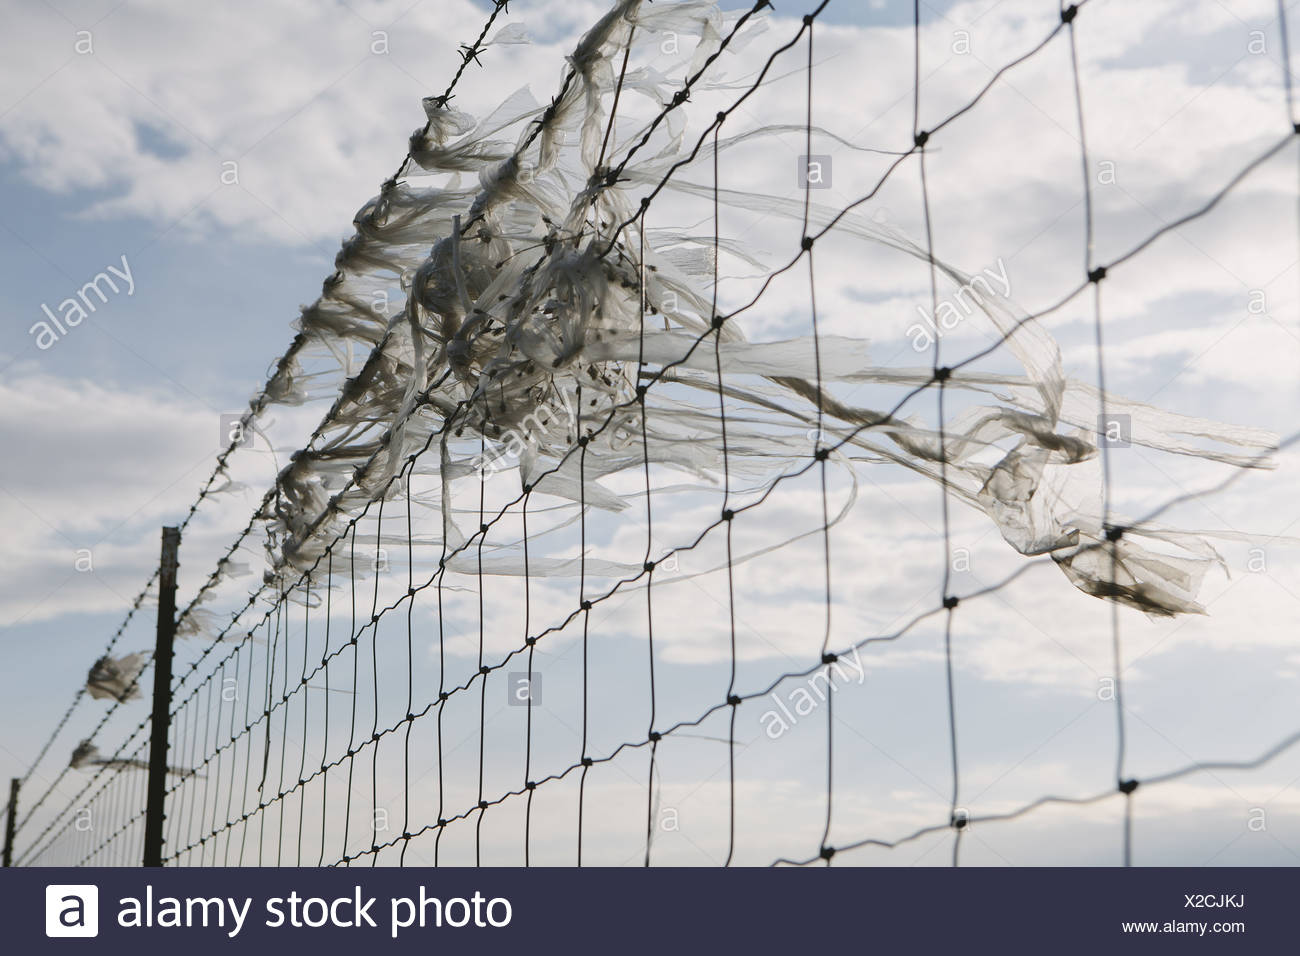 Seattle Washington USA shredded plastic bag caught on barbed wire fence - Stock Image